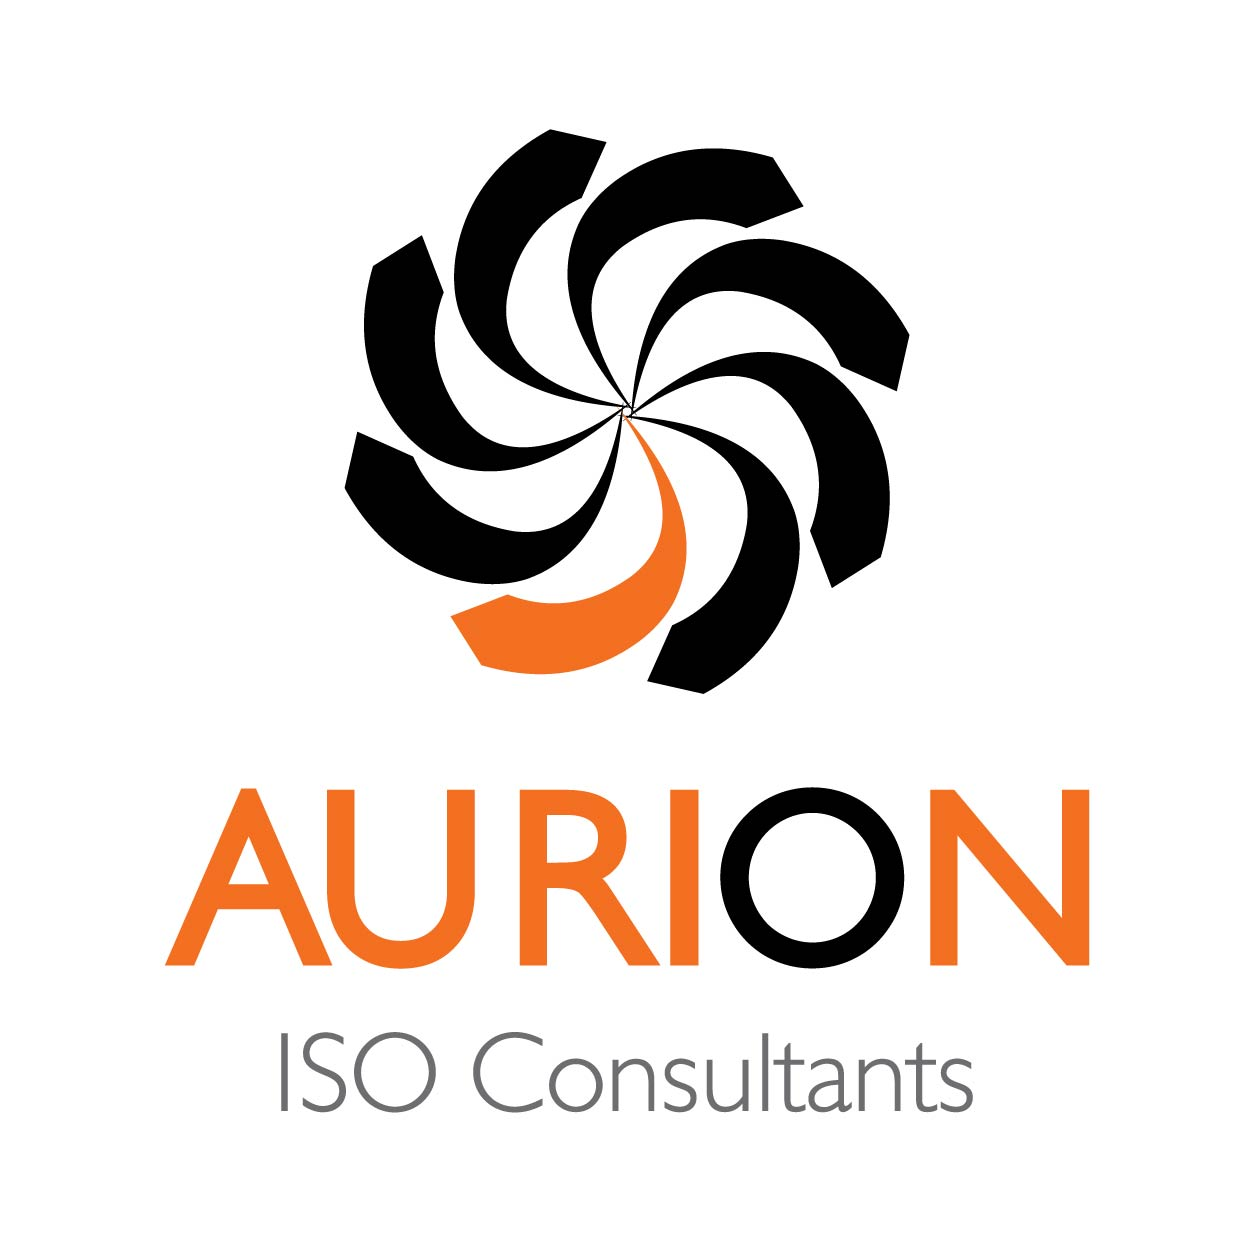 AURION ISO Consultants